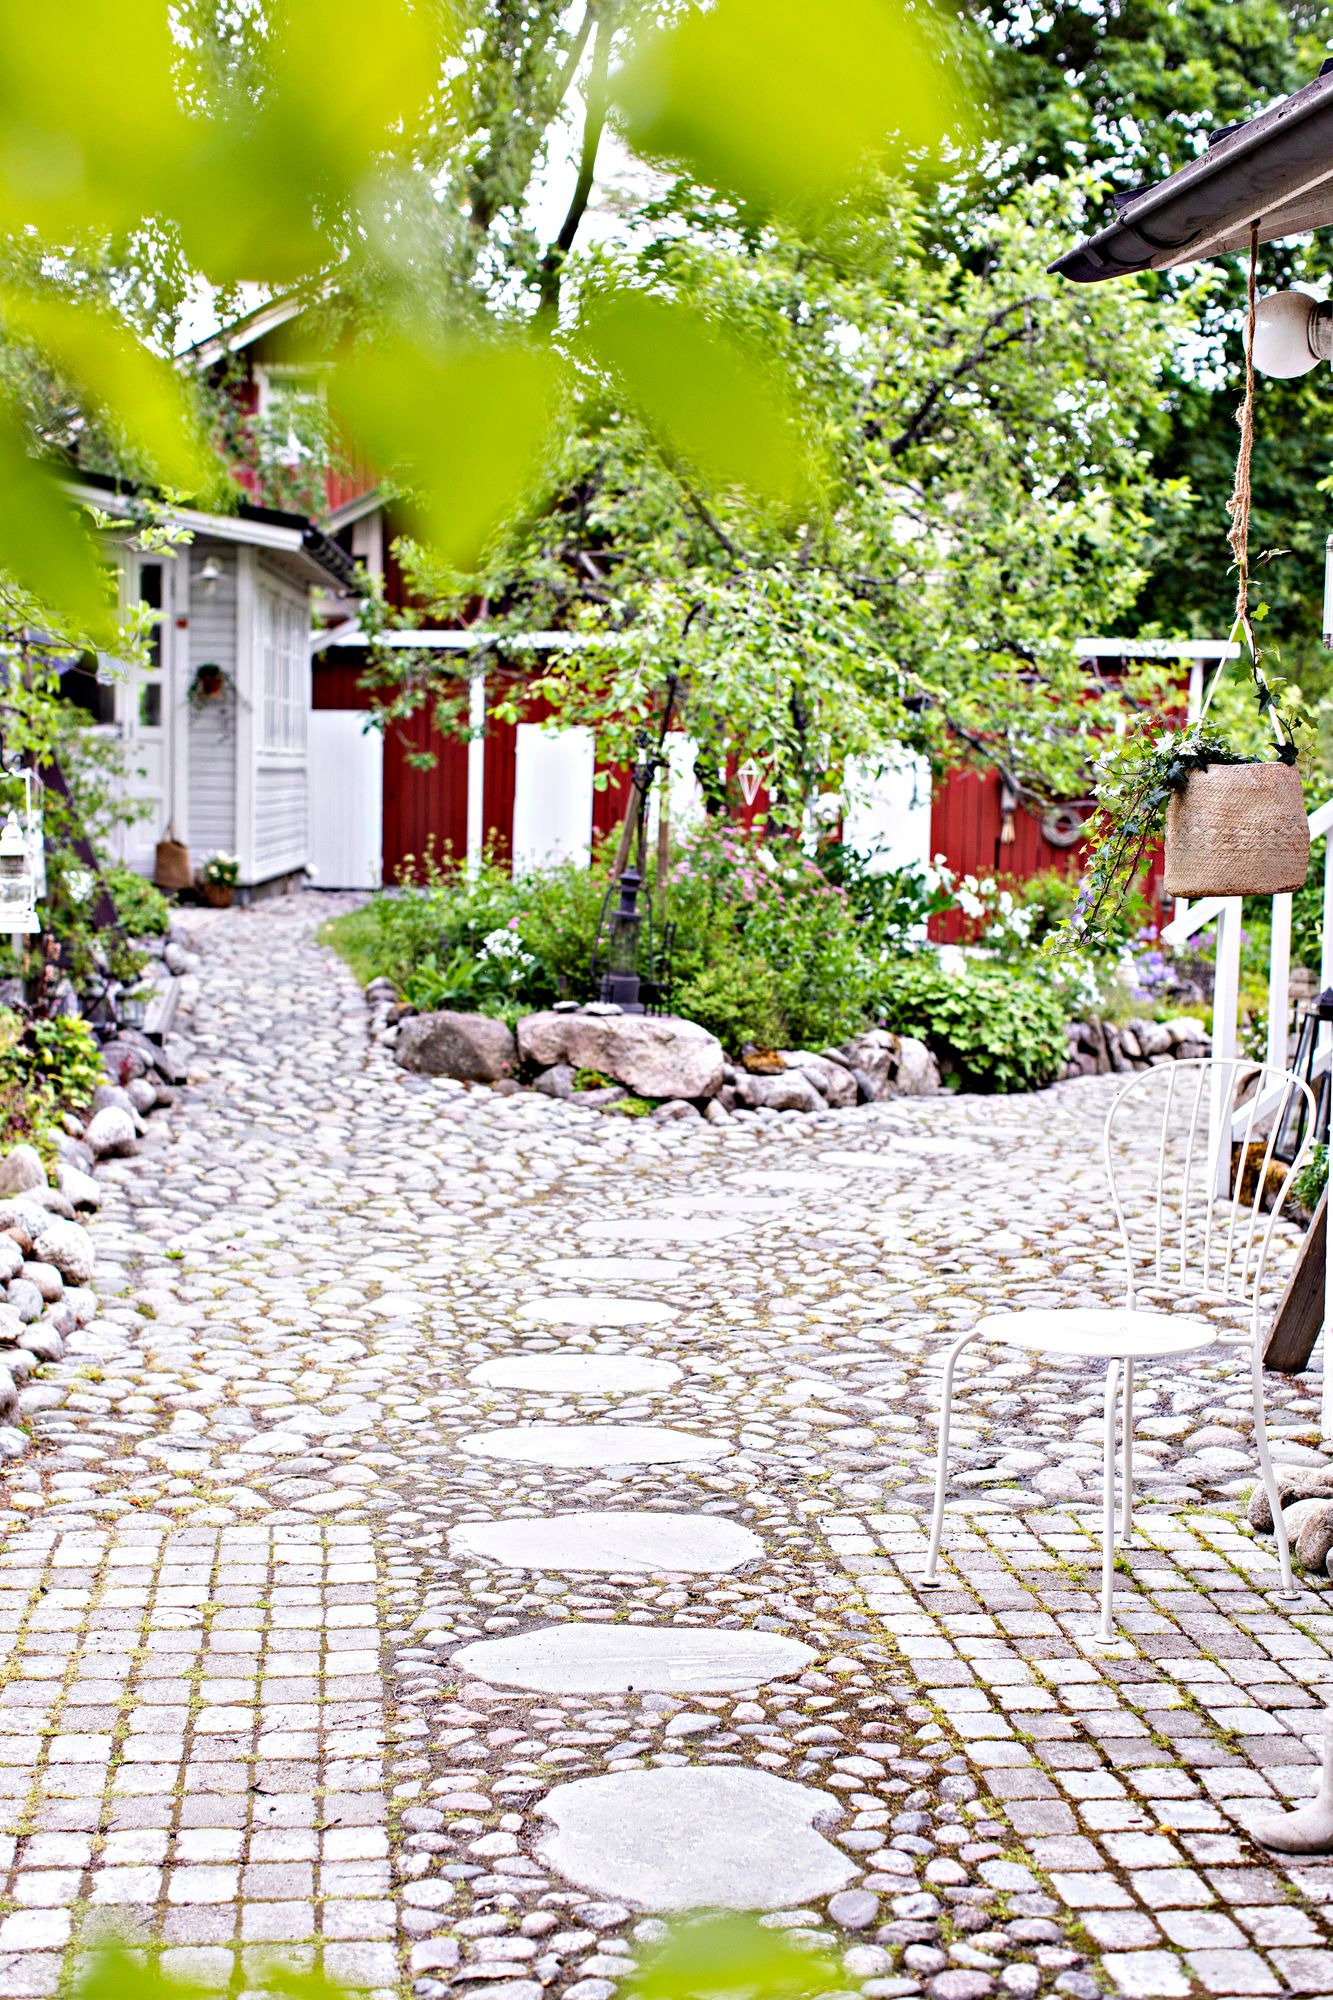 The corridor network borders the raised bench in the center of the yard.  The coating is a combination of round cobblestones and concrete stones, which provide smooth surfaces.